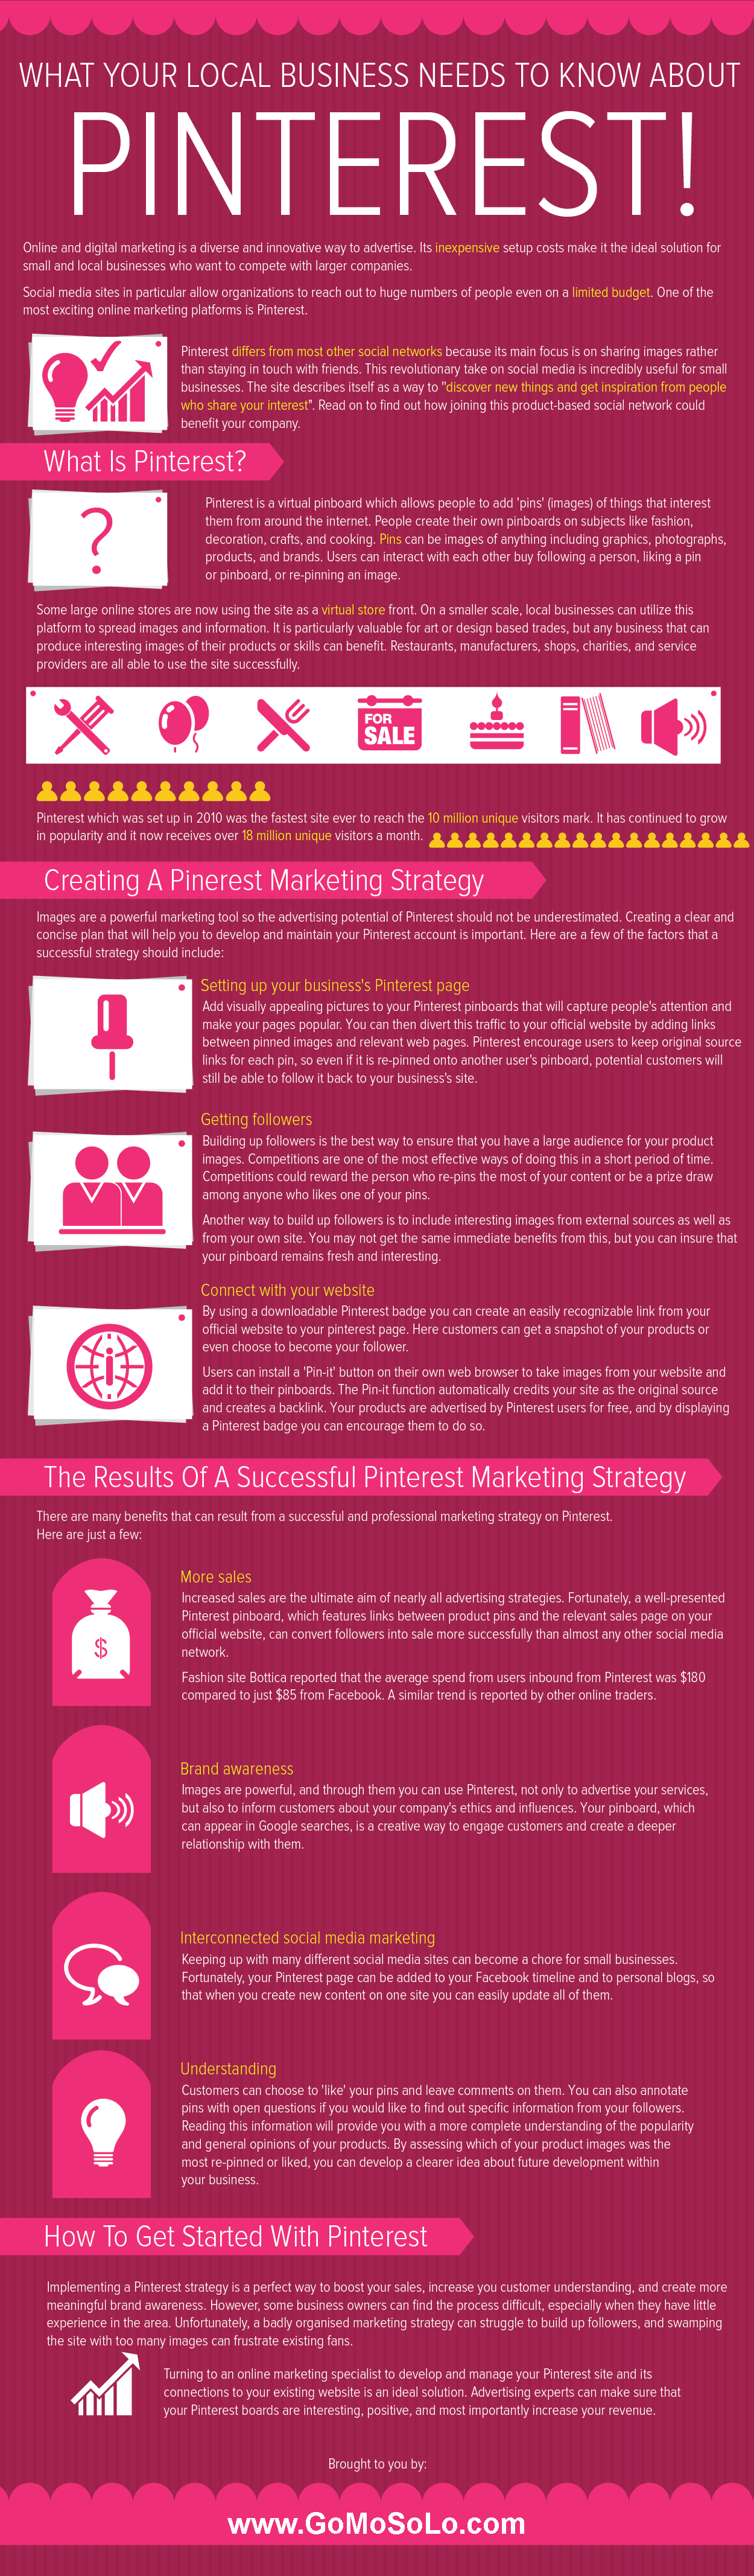 Pinterest Infographic shows why Pinterest is great for business